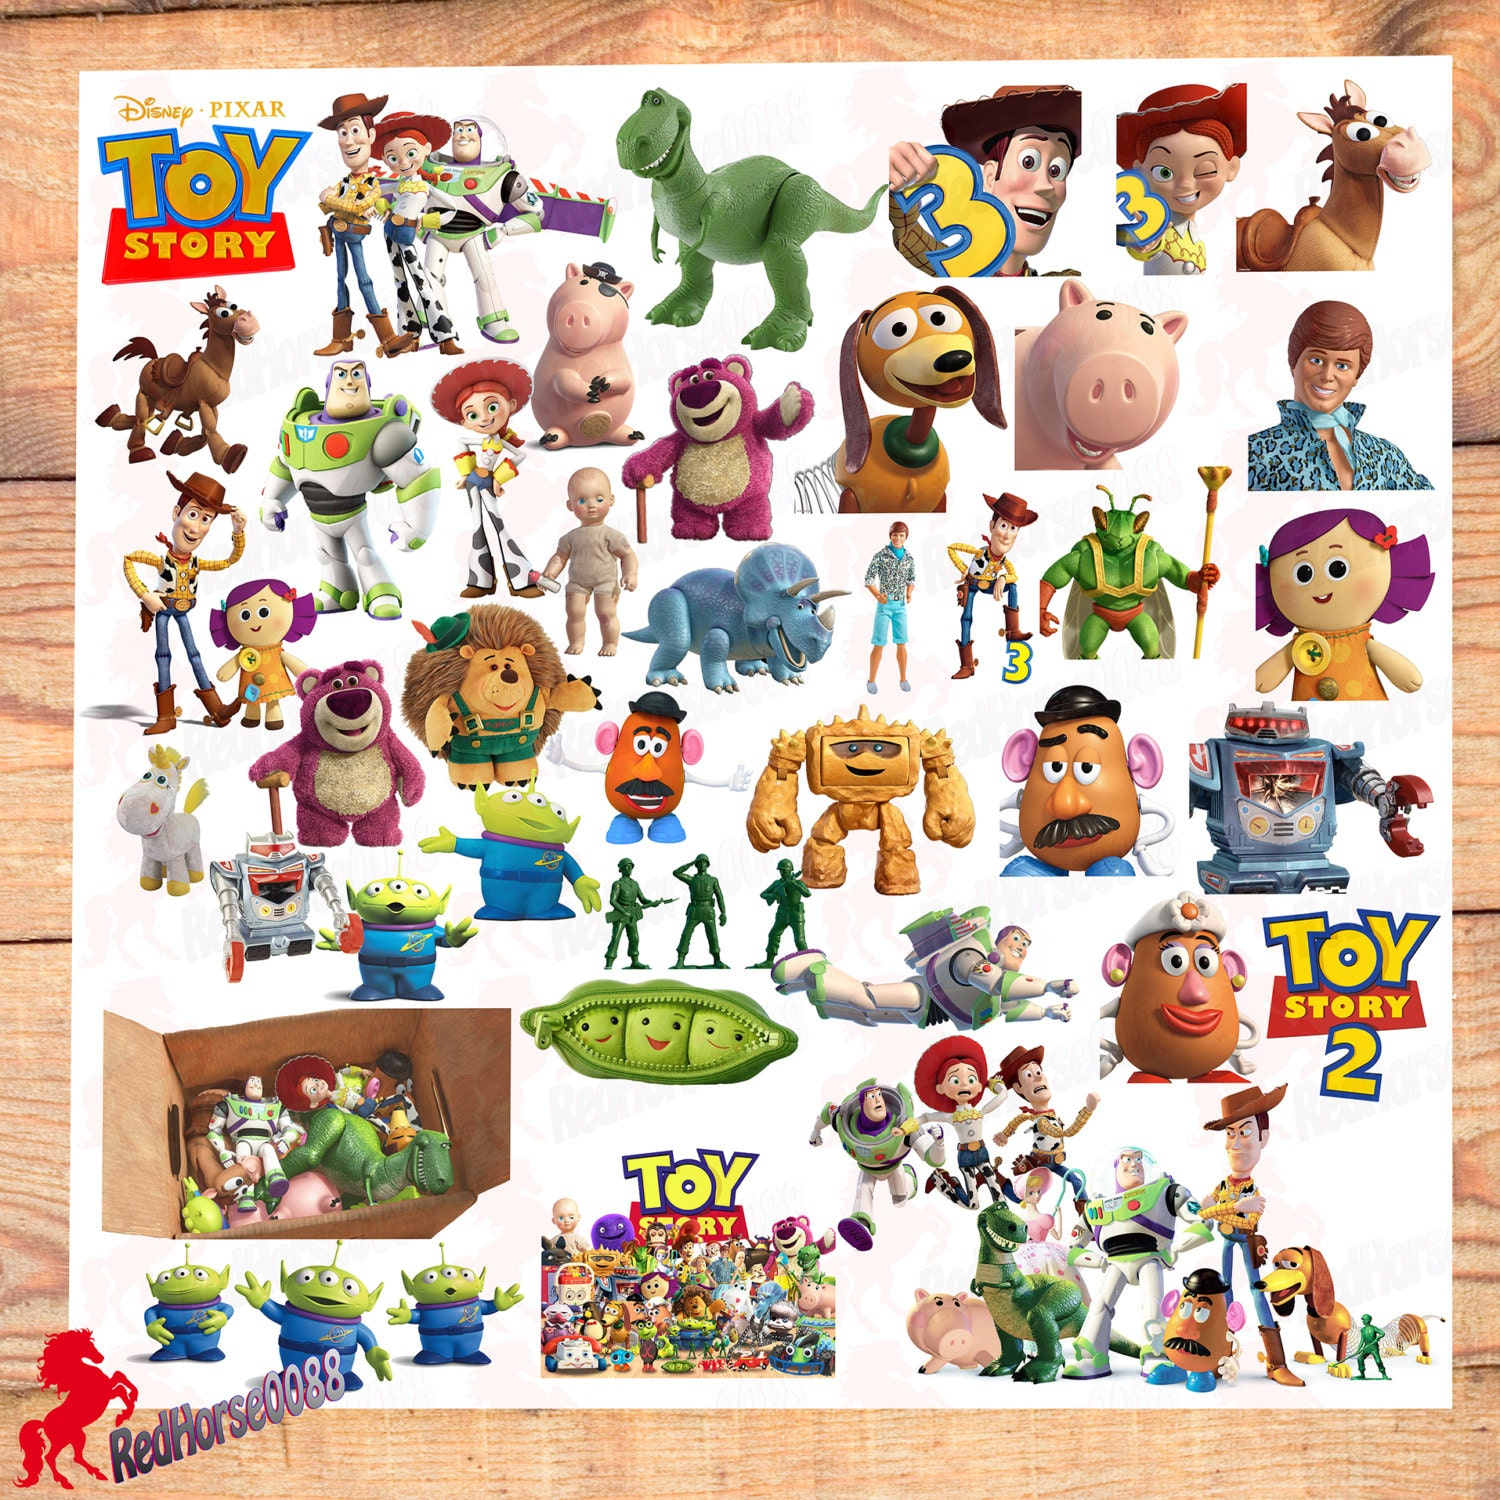 Toy Story Character List : Toy story disney pixar character png images by redhorse